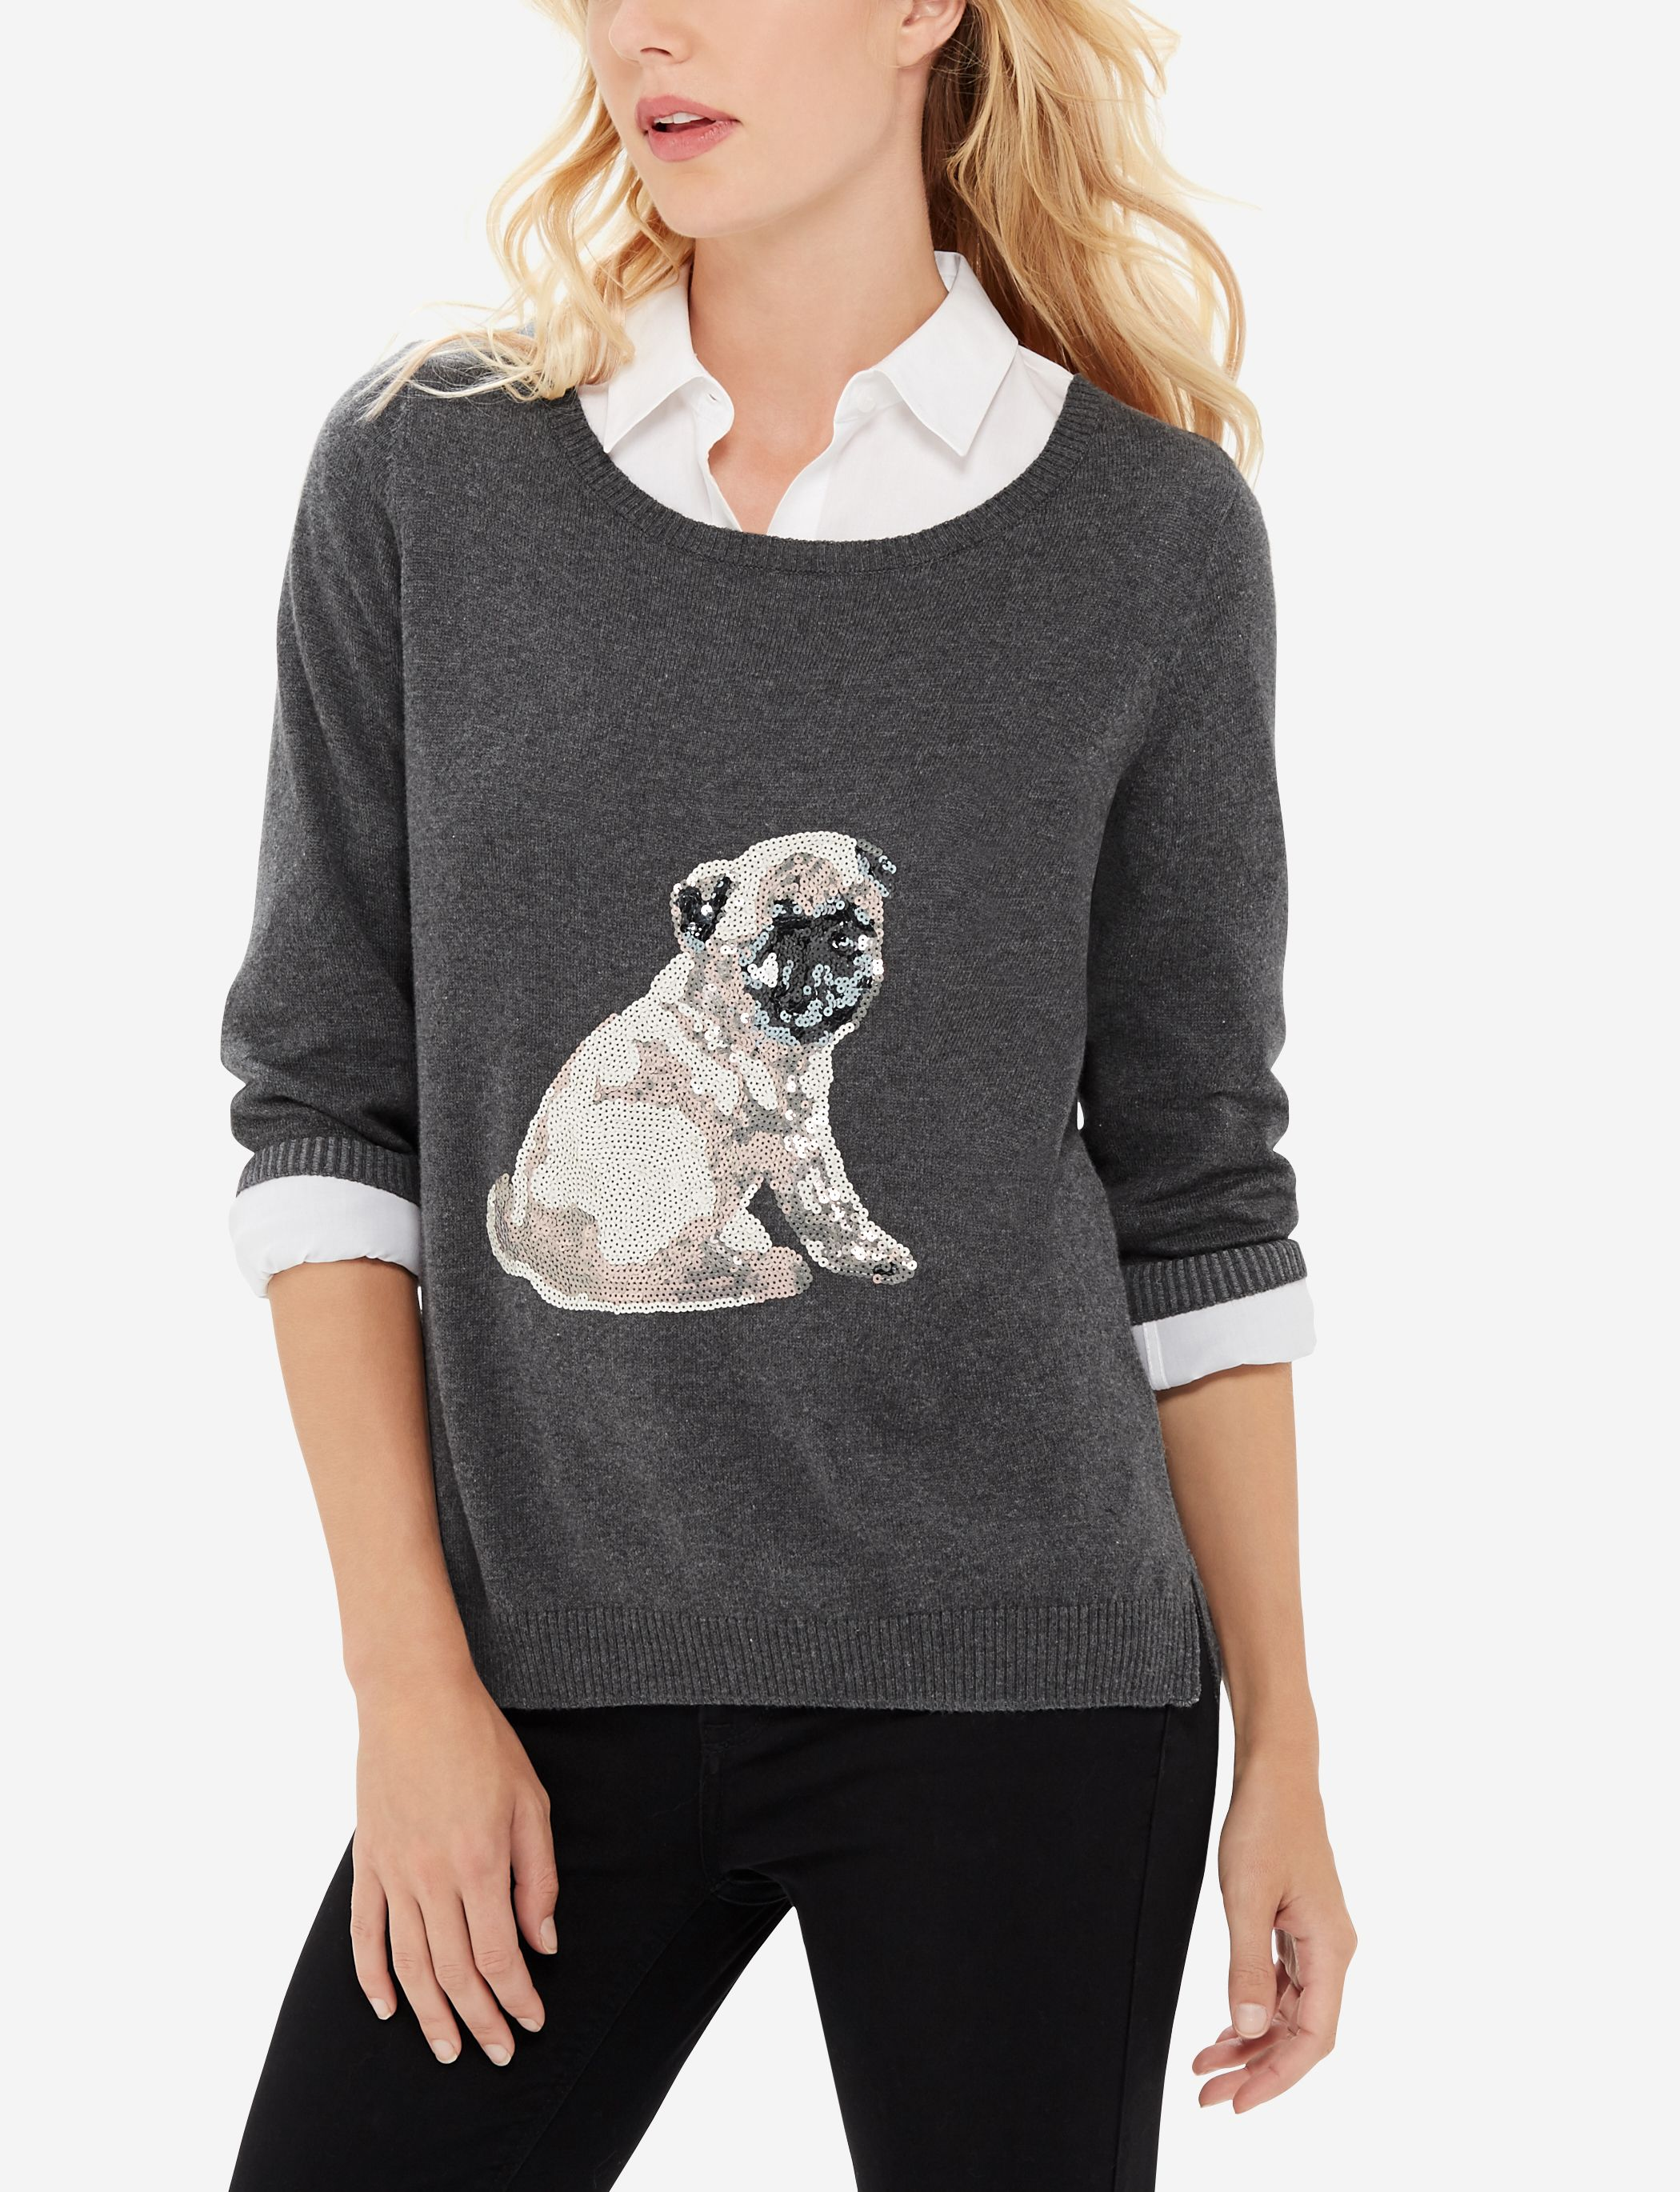 Sequined Pug Sweater - Take this sweater out for a walk! An adorable sequined puppy is perfect for every animal lover.